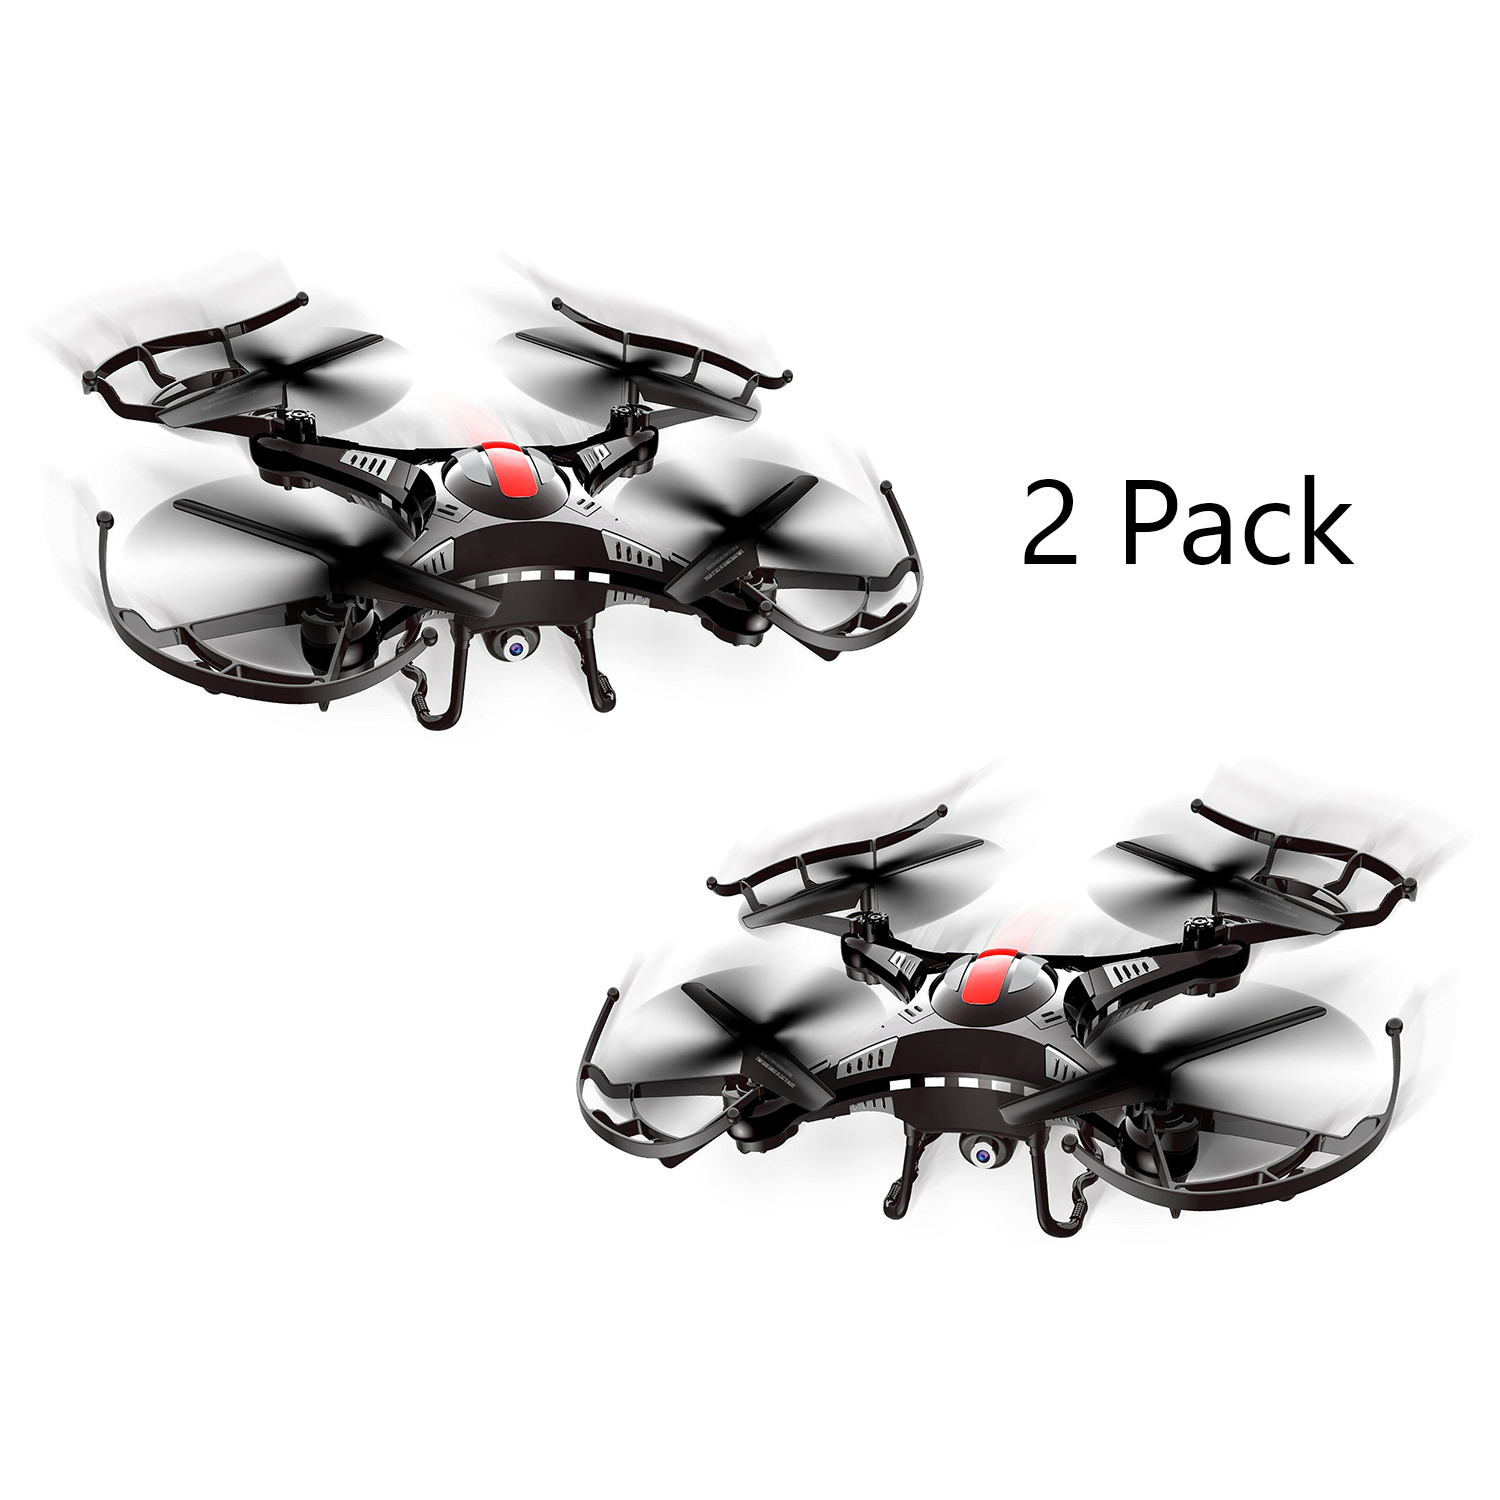 2 Pack Quadcopter Tumbler 2.4GHz Radio Control Flight Drone Video/Photo Camera